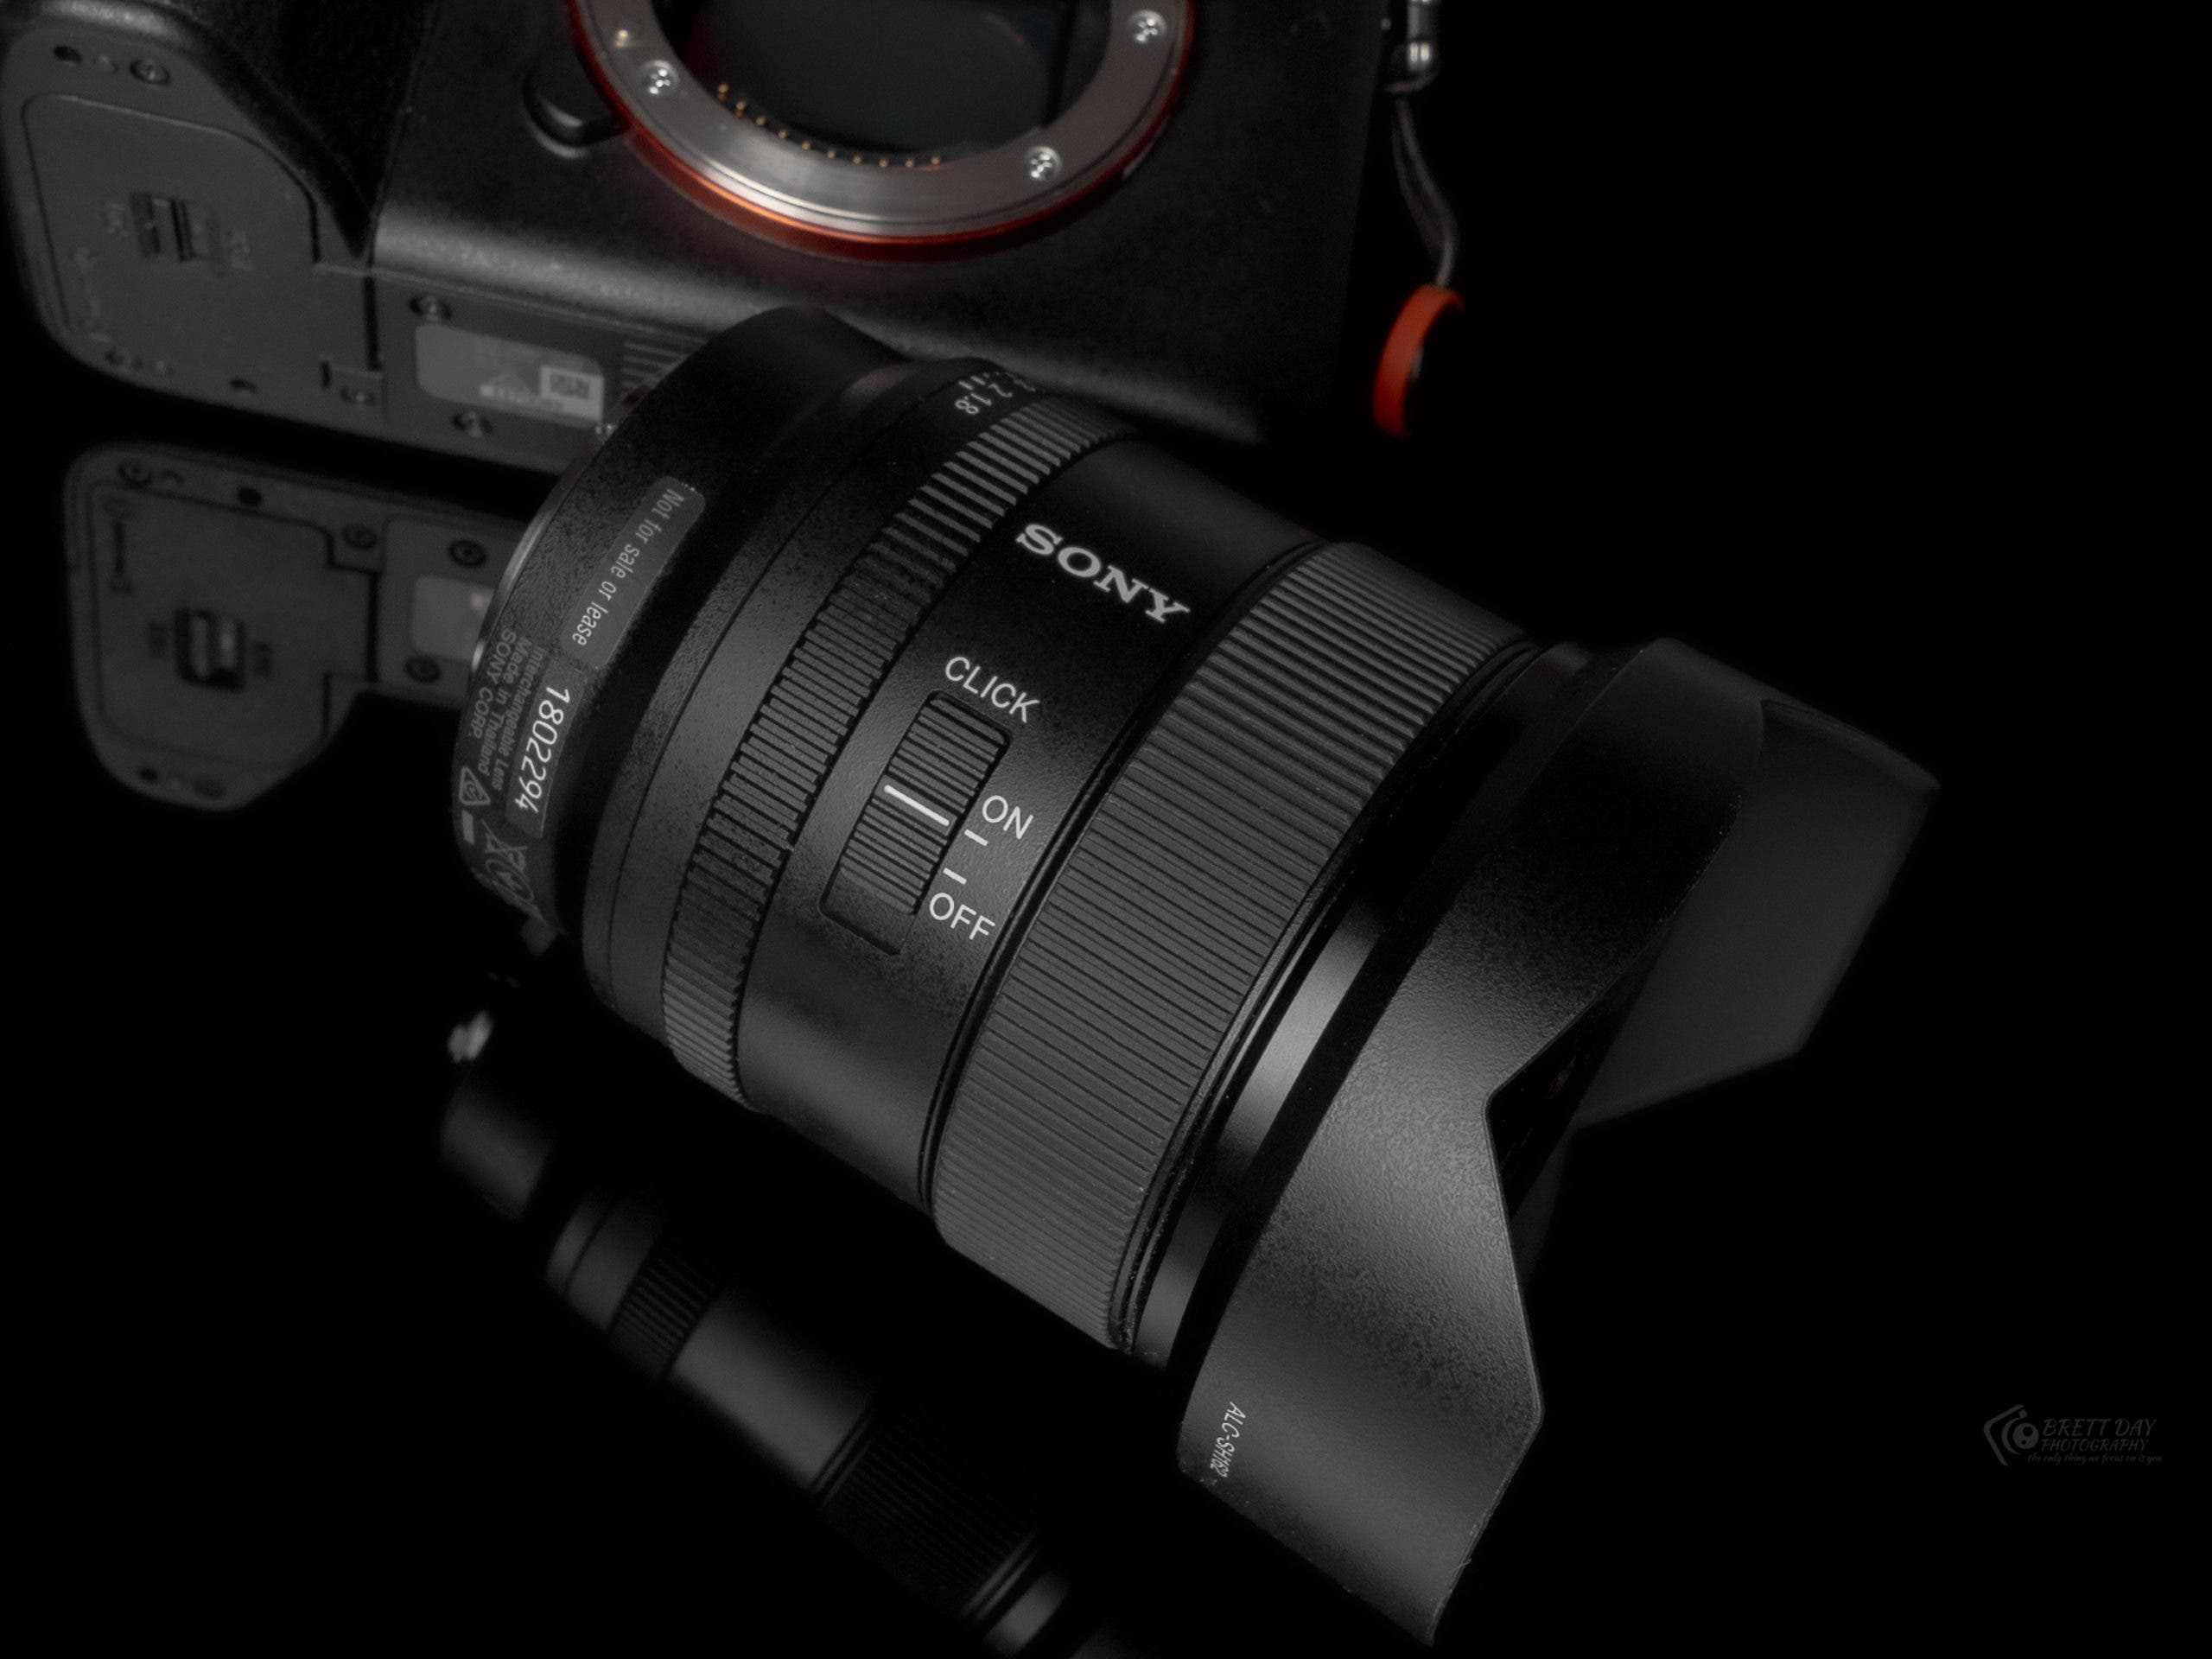 Holideals: Last Minute Deals On The Lenses You Want